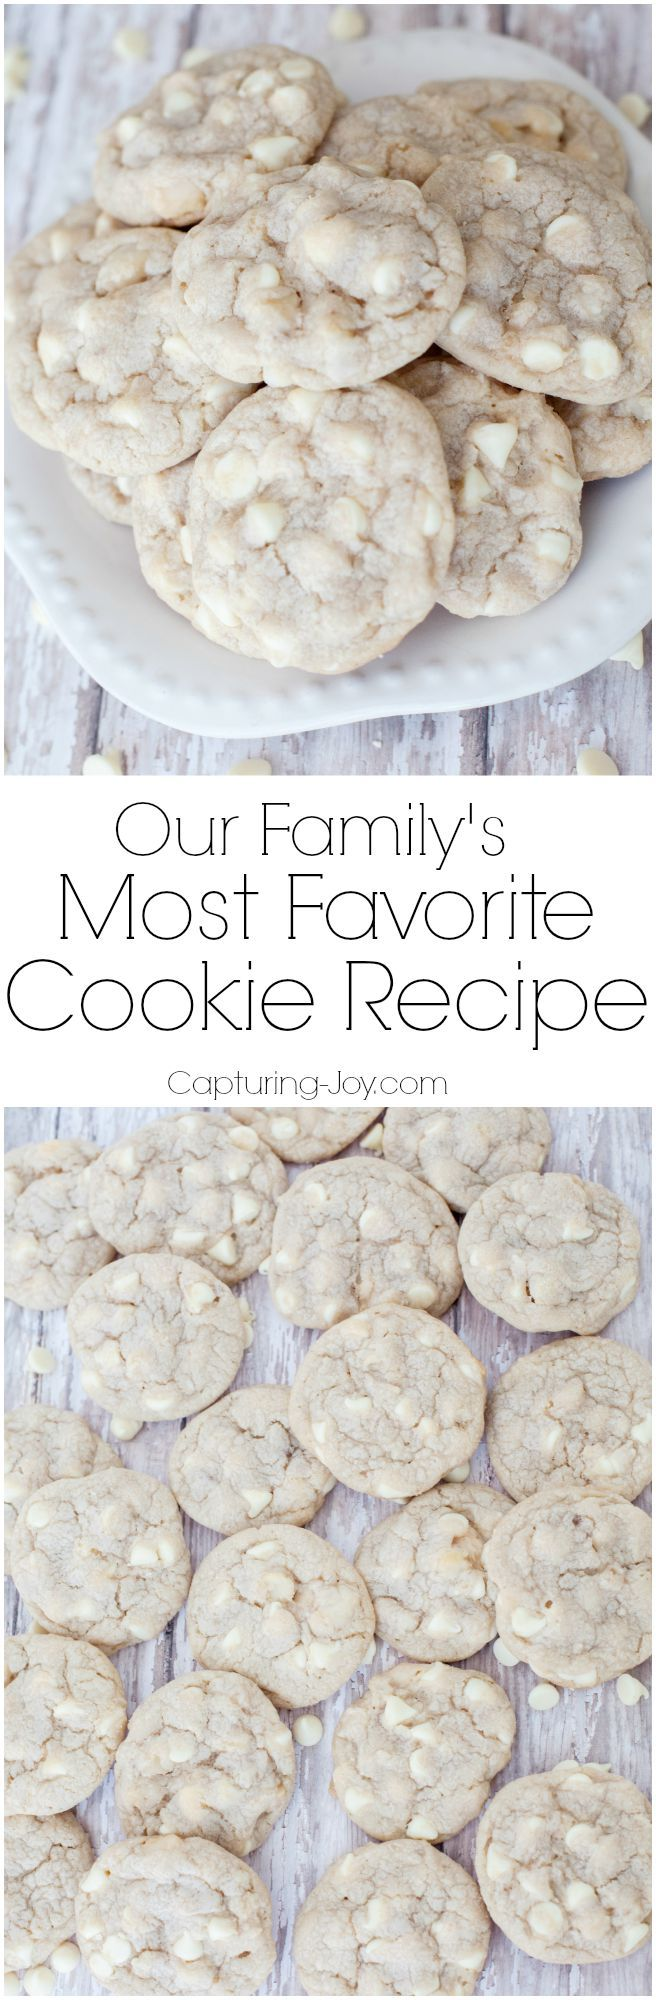 Our Family's Most Favorite Cookie Recipe, use any variety of chips, it's the base that is so tasty and unique!